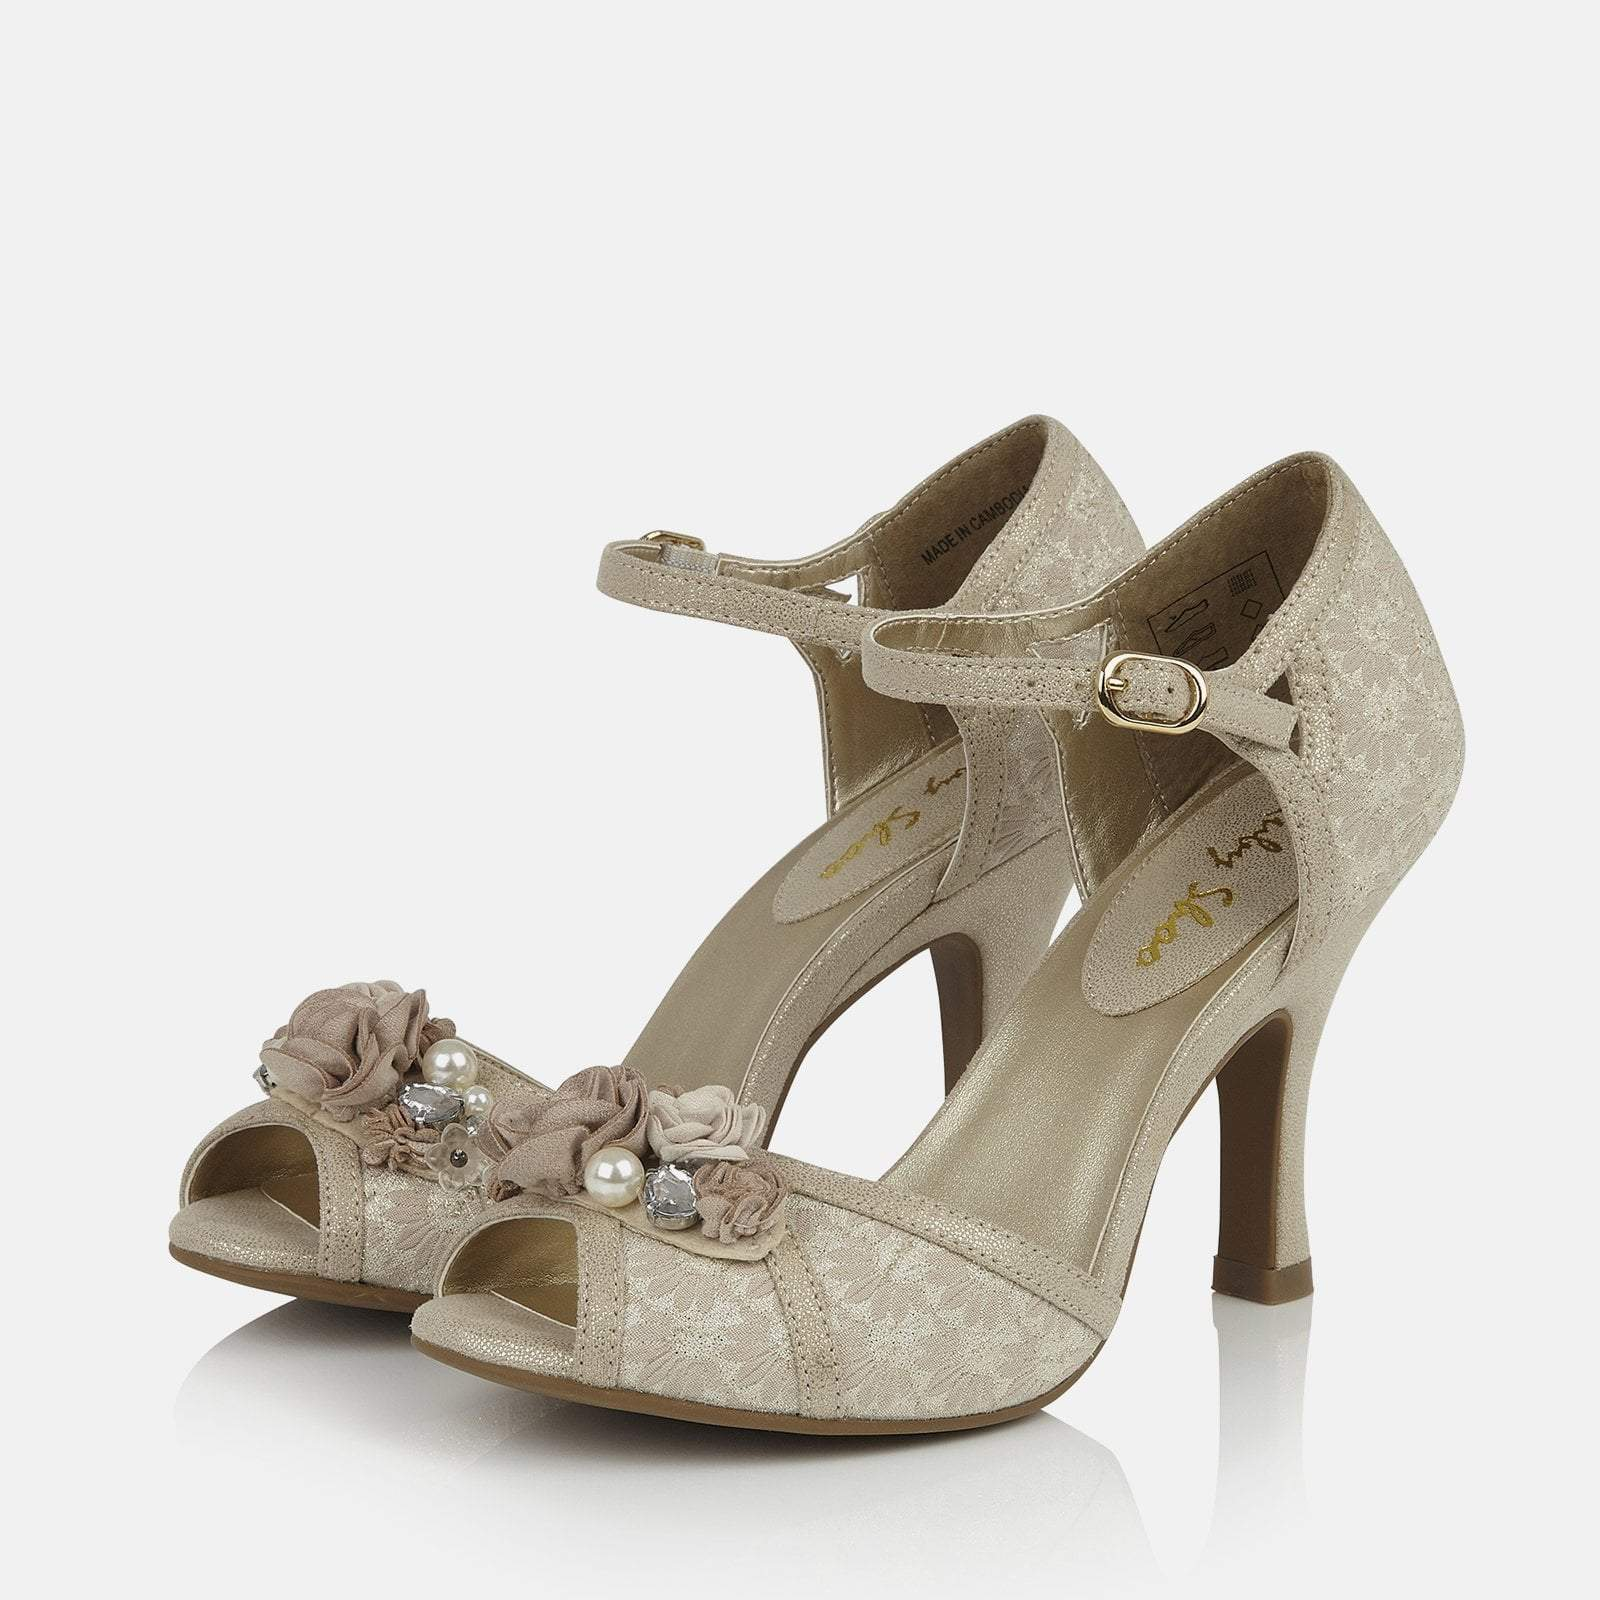 Ruby Shoo Footwear Clarissa Cream/Gold